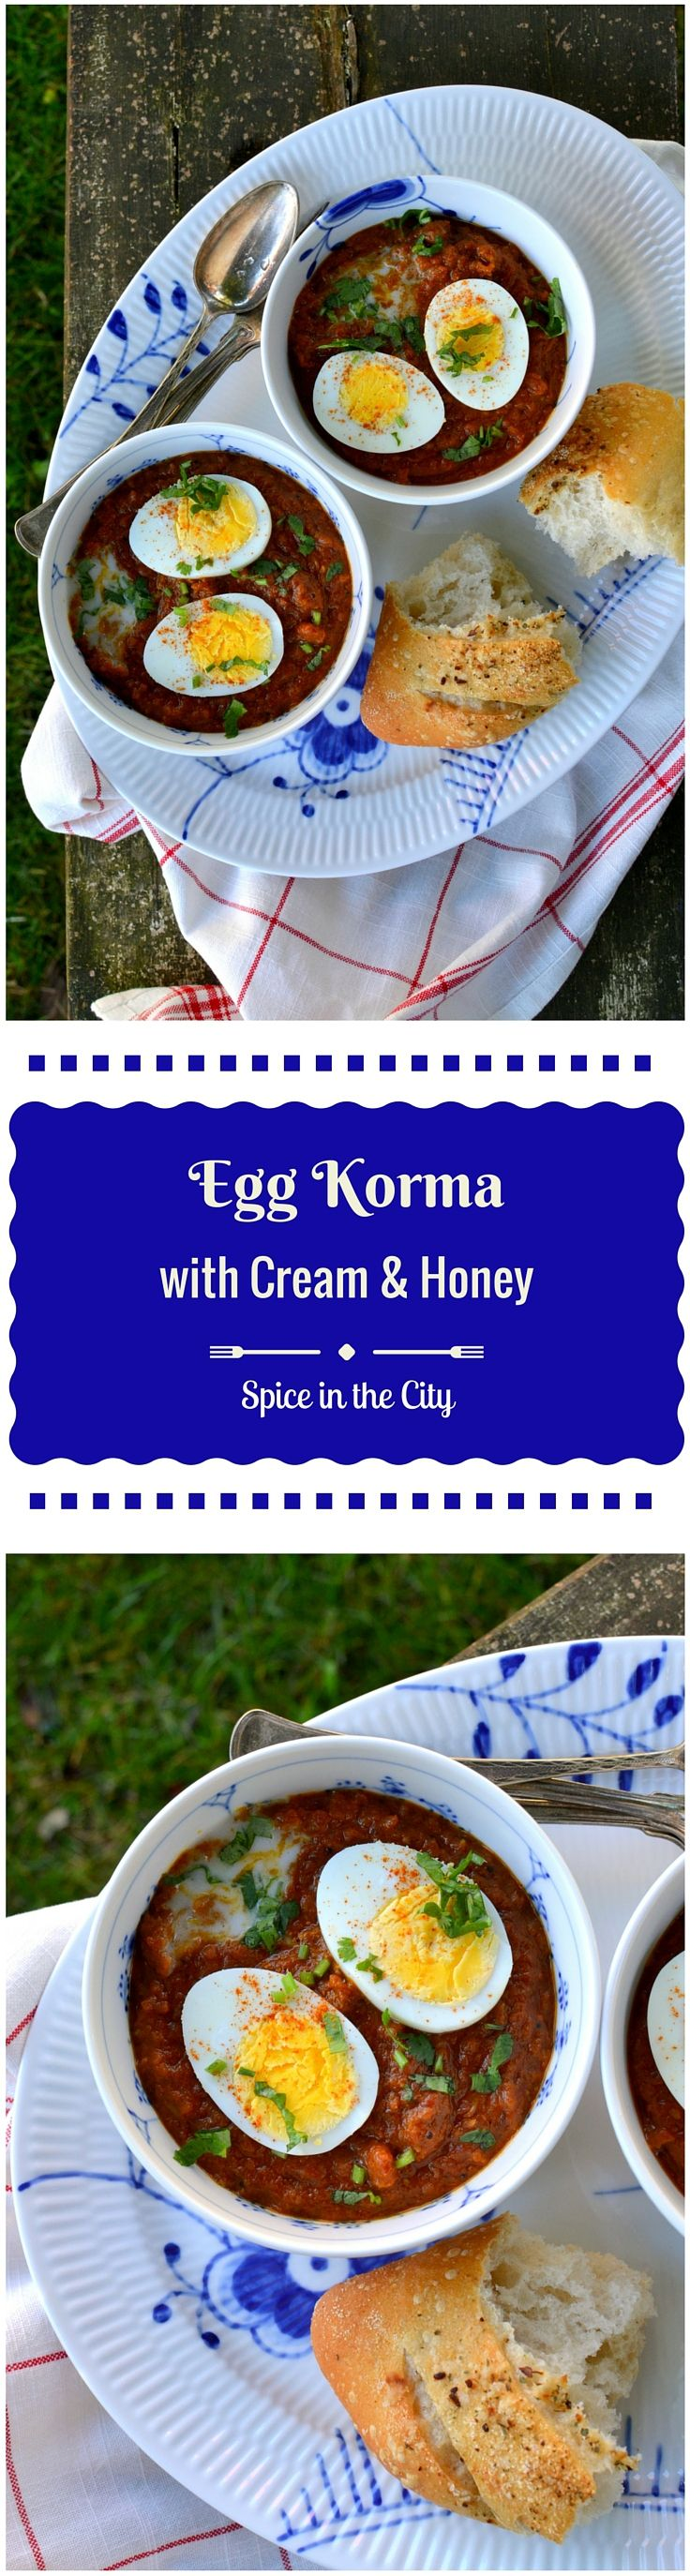 Egg Korma with Cream and Honey | Spice in the City: A fabulous curry of hard-boiled eggs in a velvety sauce resplendent with spices and rich with cream and a hint of honey!